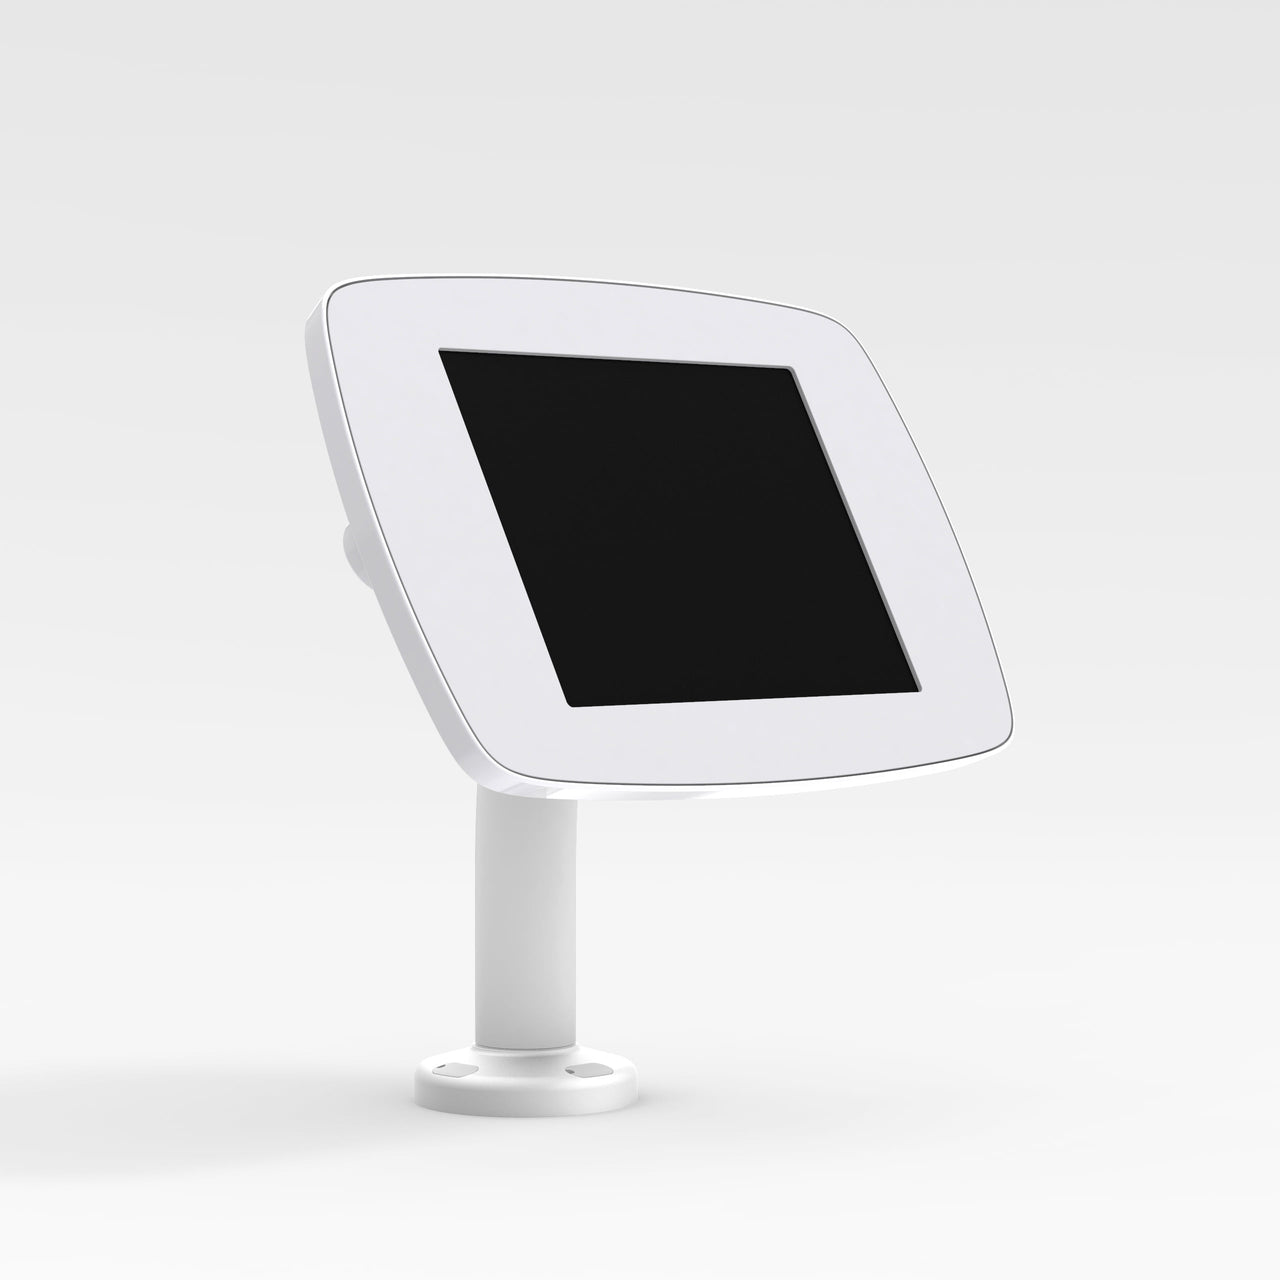 Bouncepad Static 60 - A secure tablet & iPad desk mount in white.